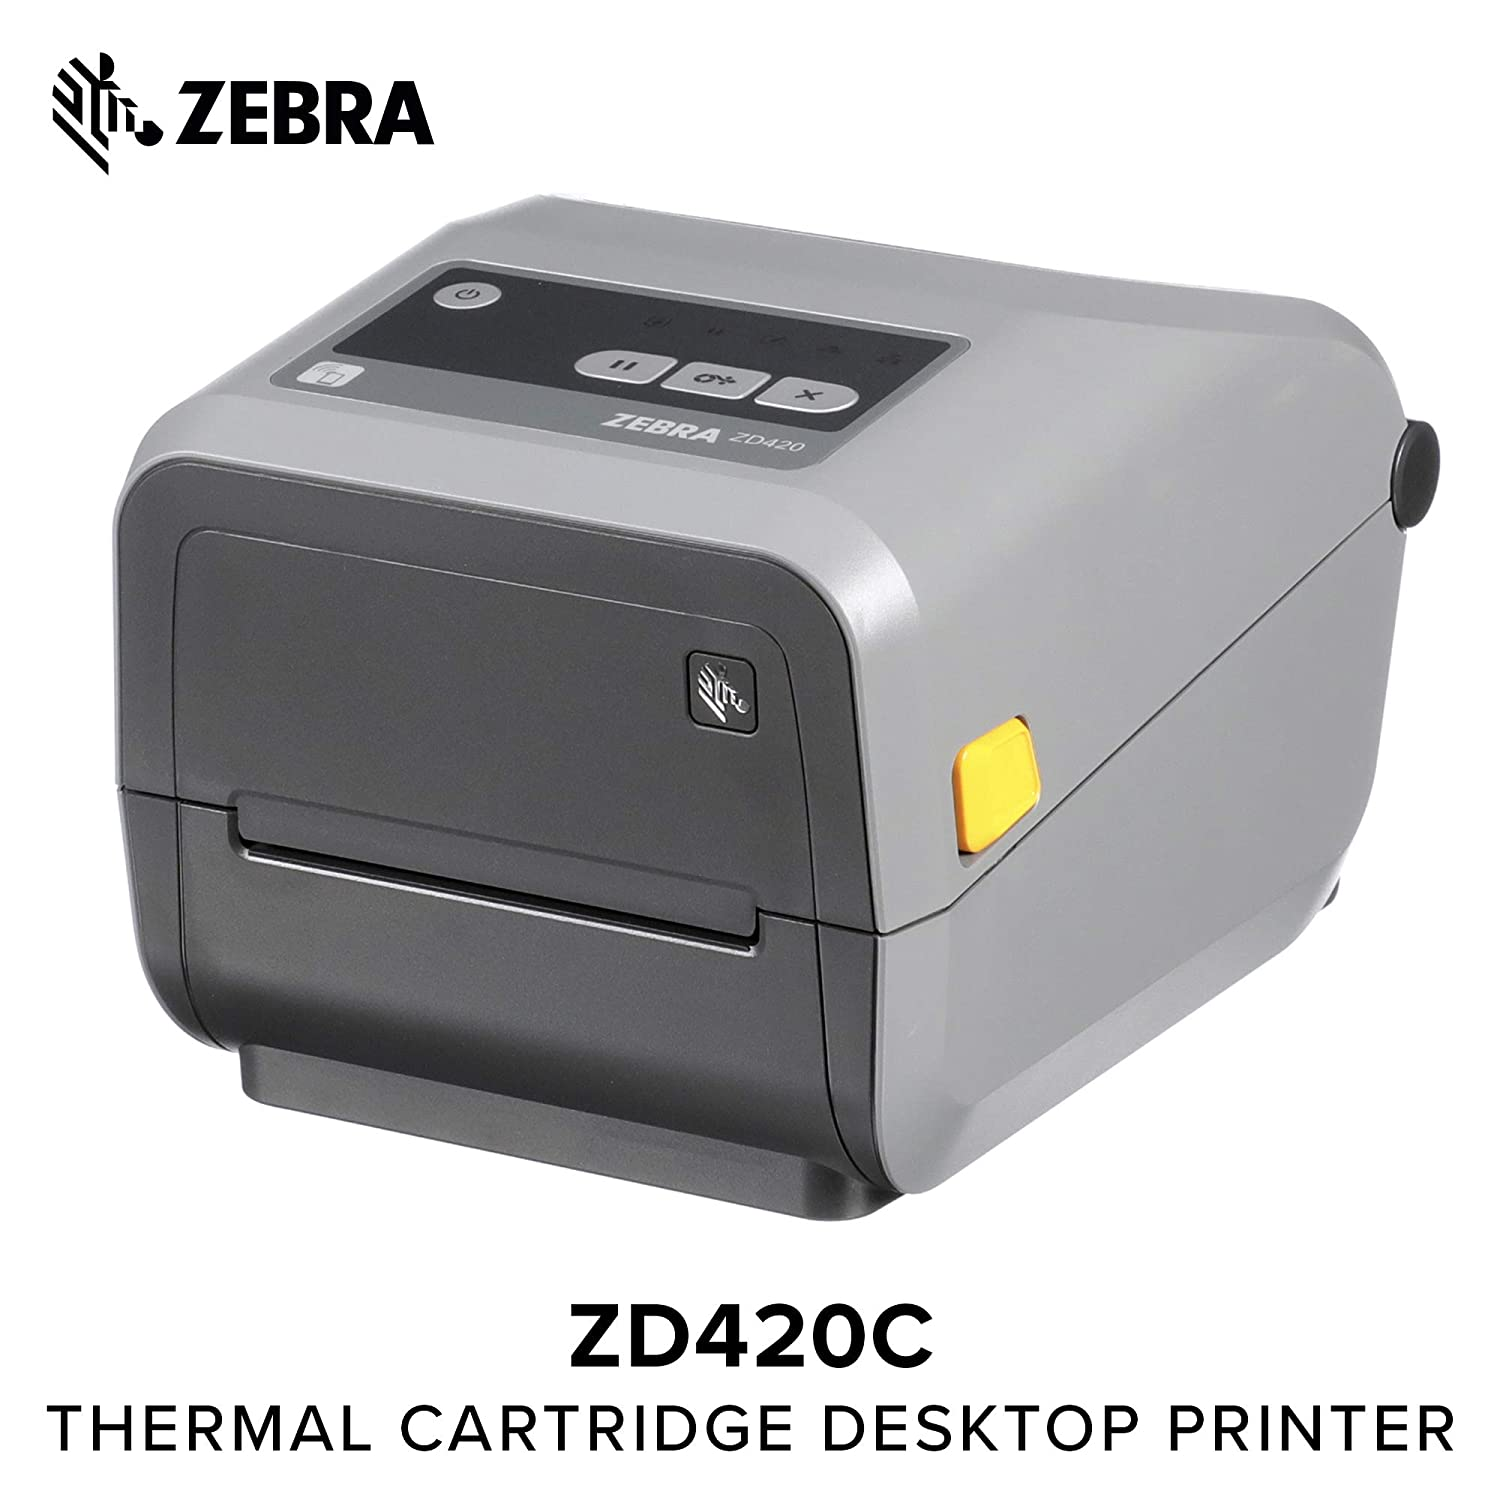 Zebra - ZD420c Ribbon Cartridge Desktop Printer for Labels and Barcodes -  Print Width 4 in - 203 dpi - Interface: WiFi, Bluetooth, USB -